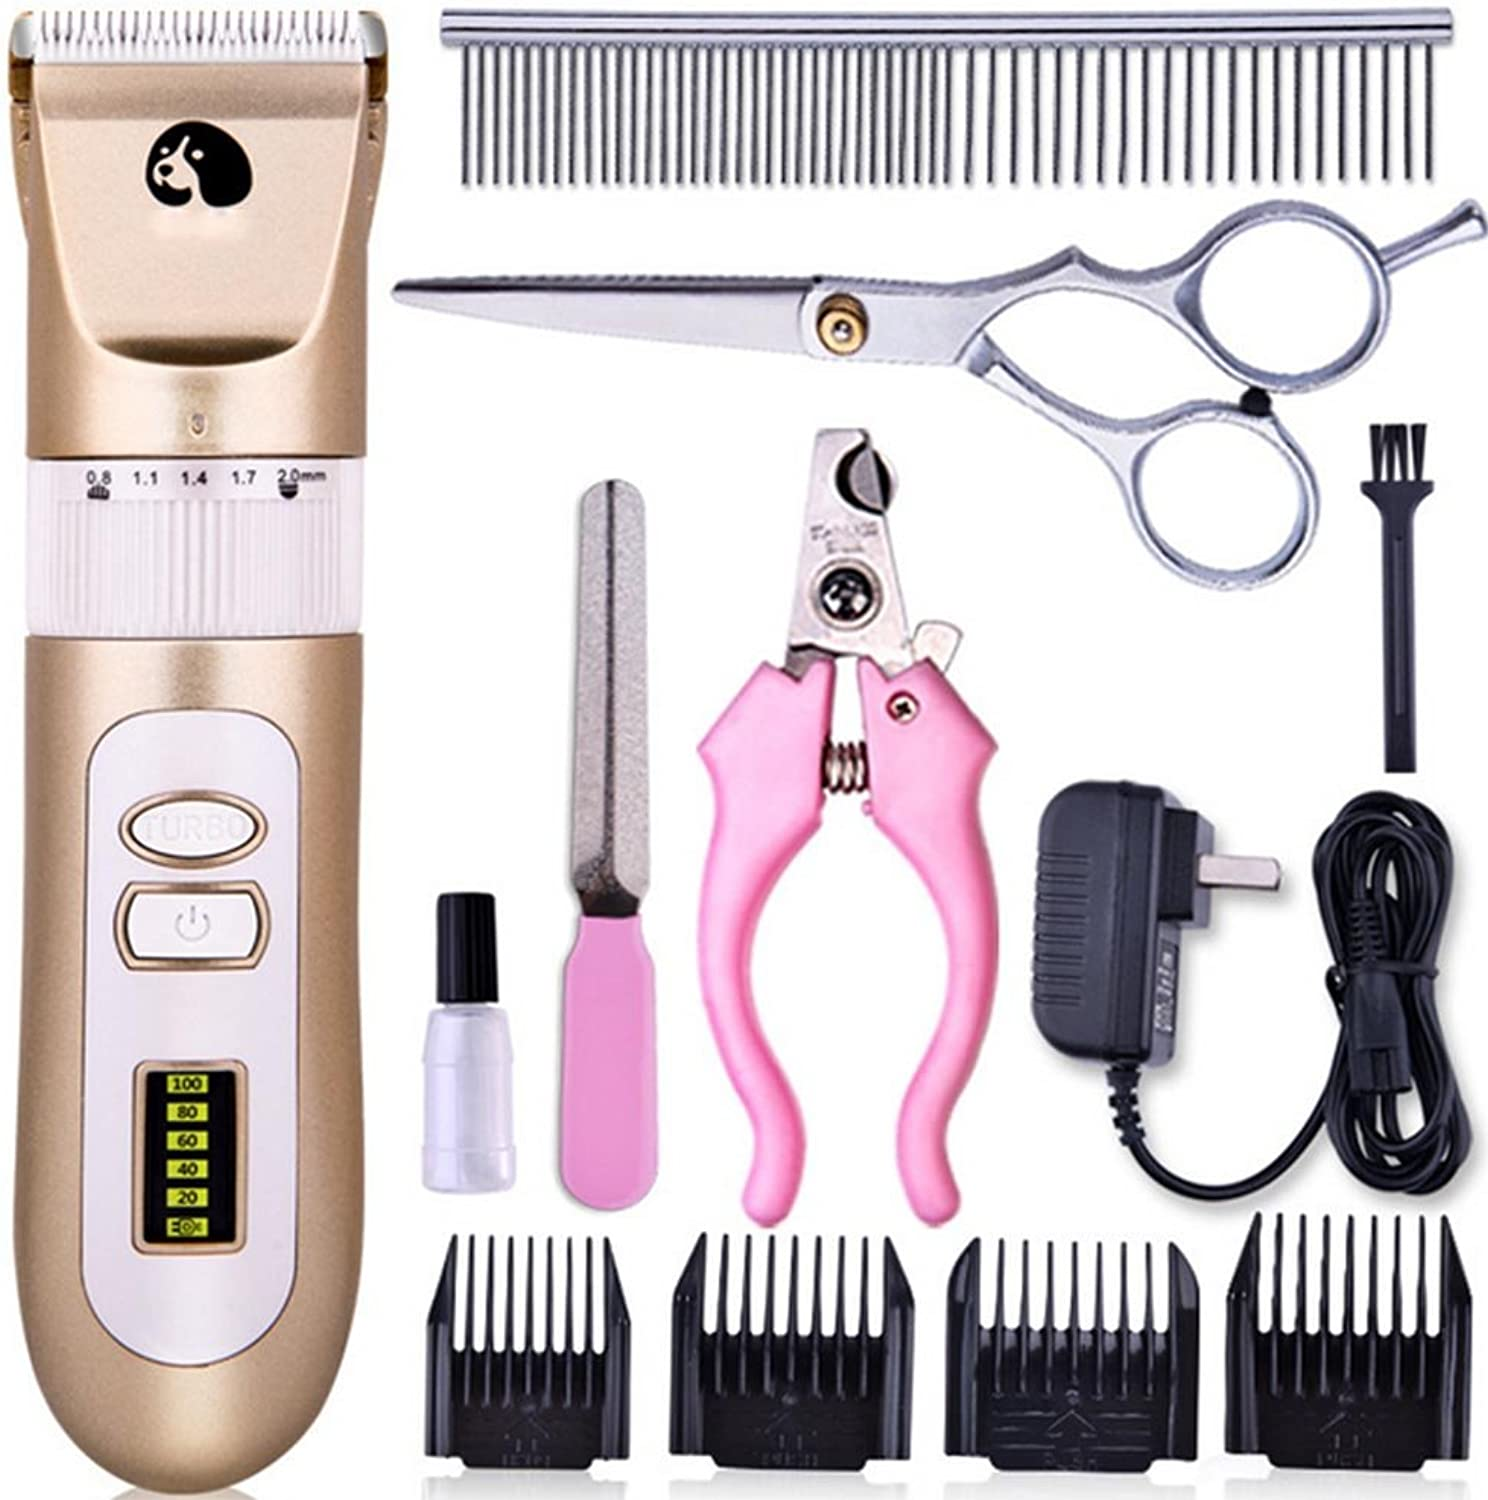 Pet Rechargeable Cordless Grooming Clippers LCD Power Display Low Noise With 4 Comb Guides Grooming Trimming Kit Set For Animals